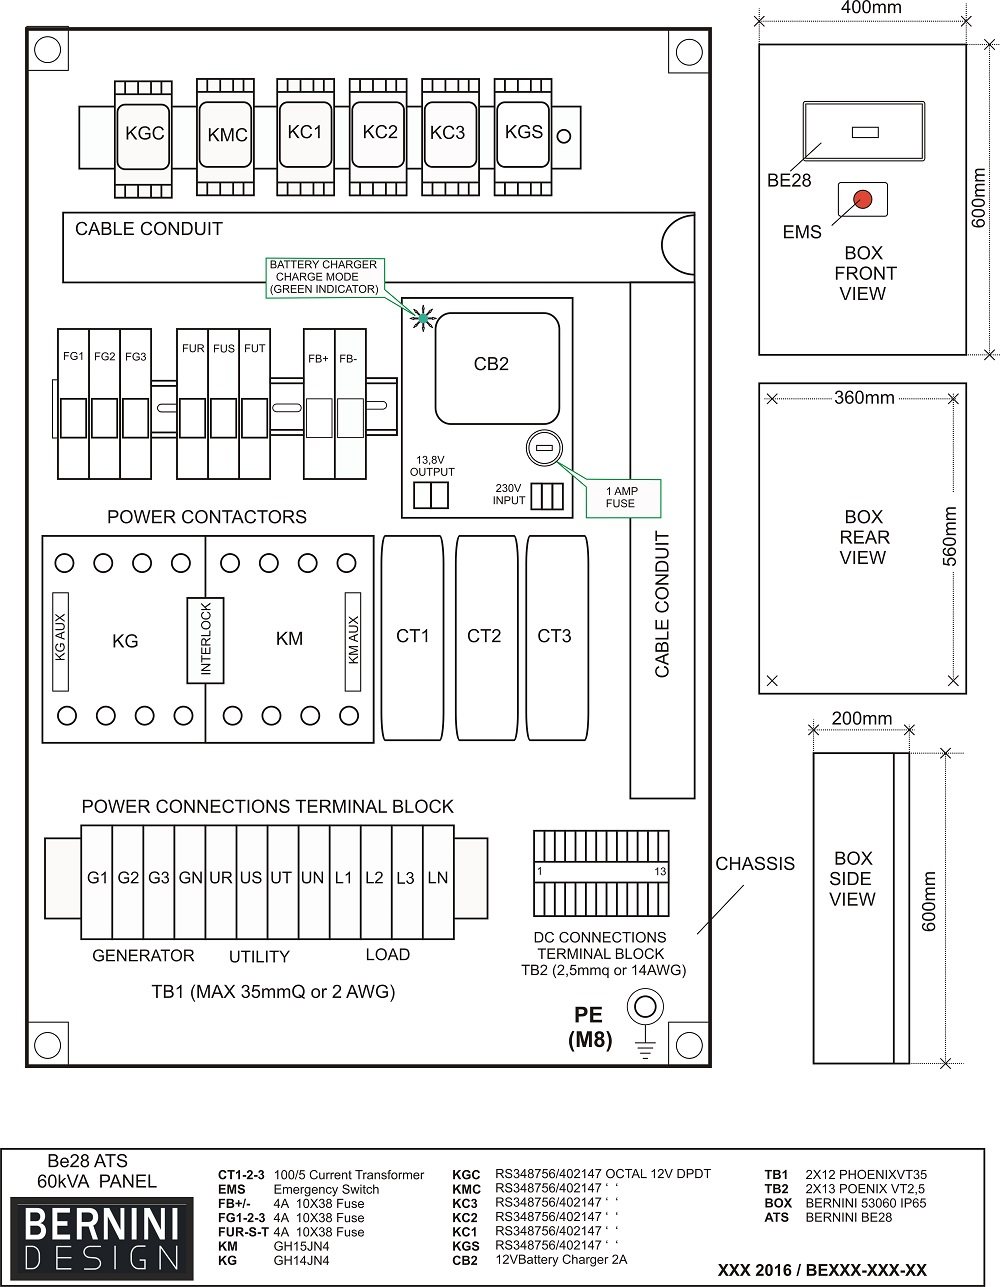 Automatic Transfer Switch Circuit Diagram furthermore Automatic Transfer Switch Configuration besides Panel Wiring Diagram 2 furthermore Automatic Changeover Switch For Generator Circuit Diagram additionally Generac Generator Wiring Diagram. on ats diagram for generator